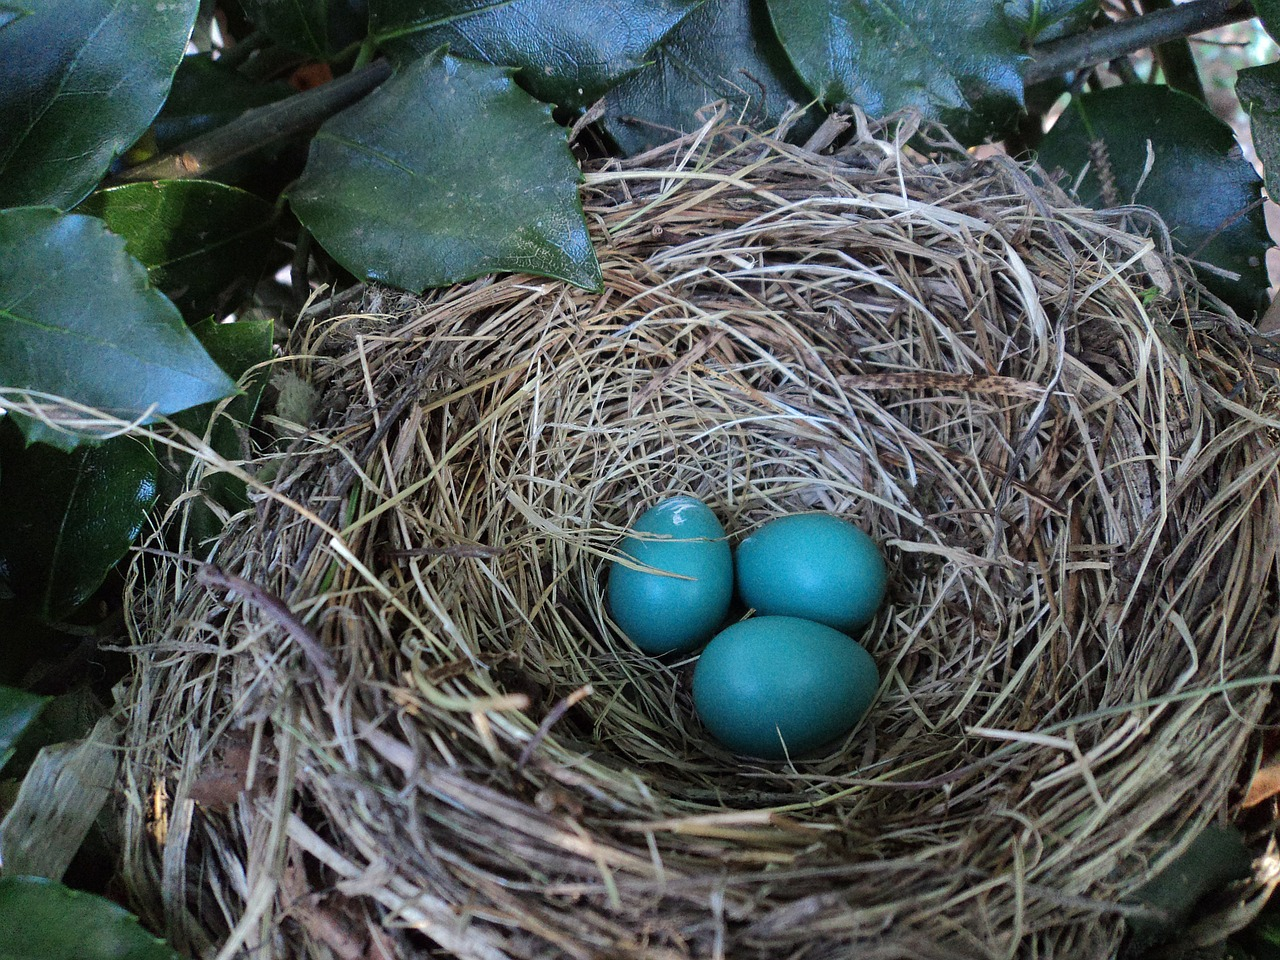 Picture of a nest and eggs